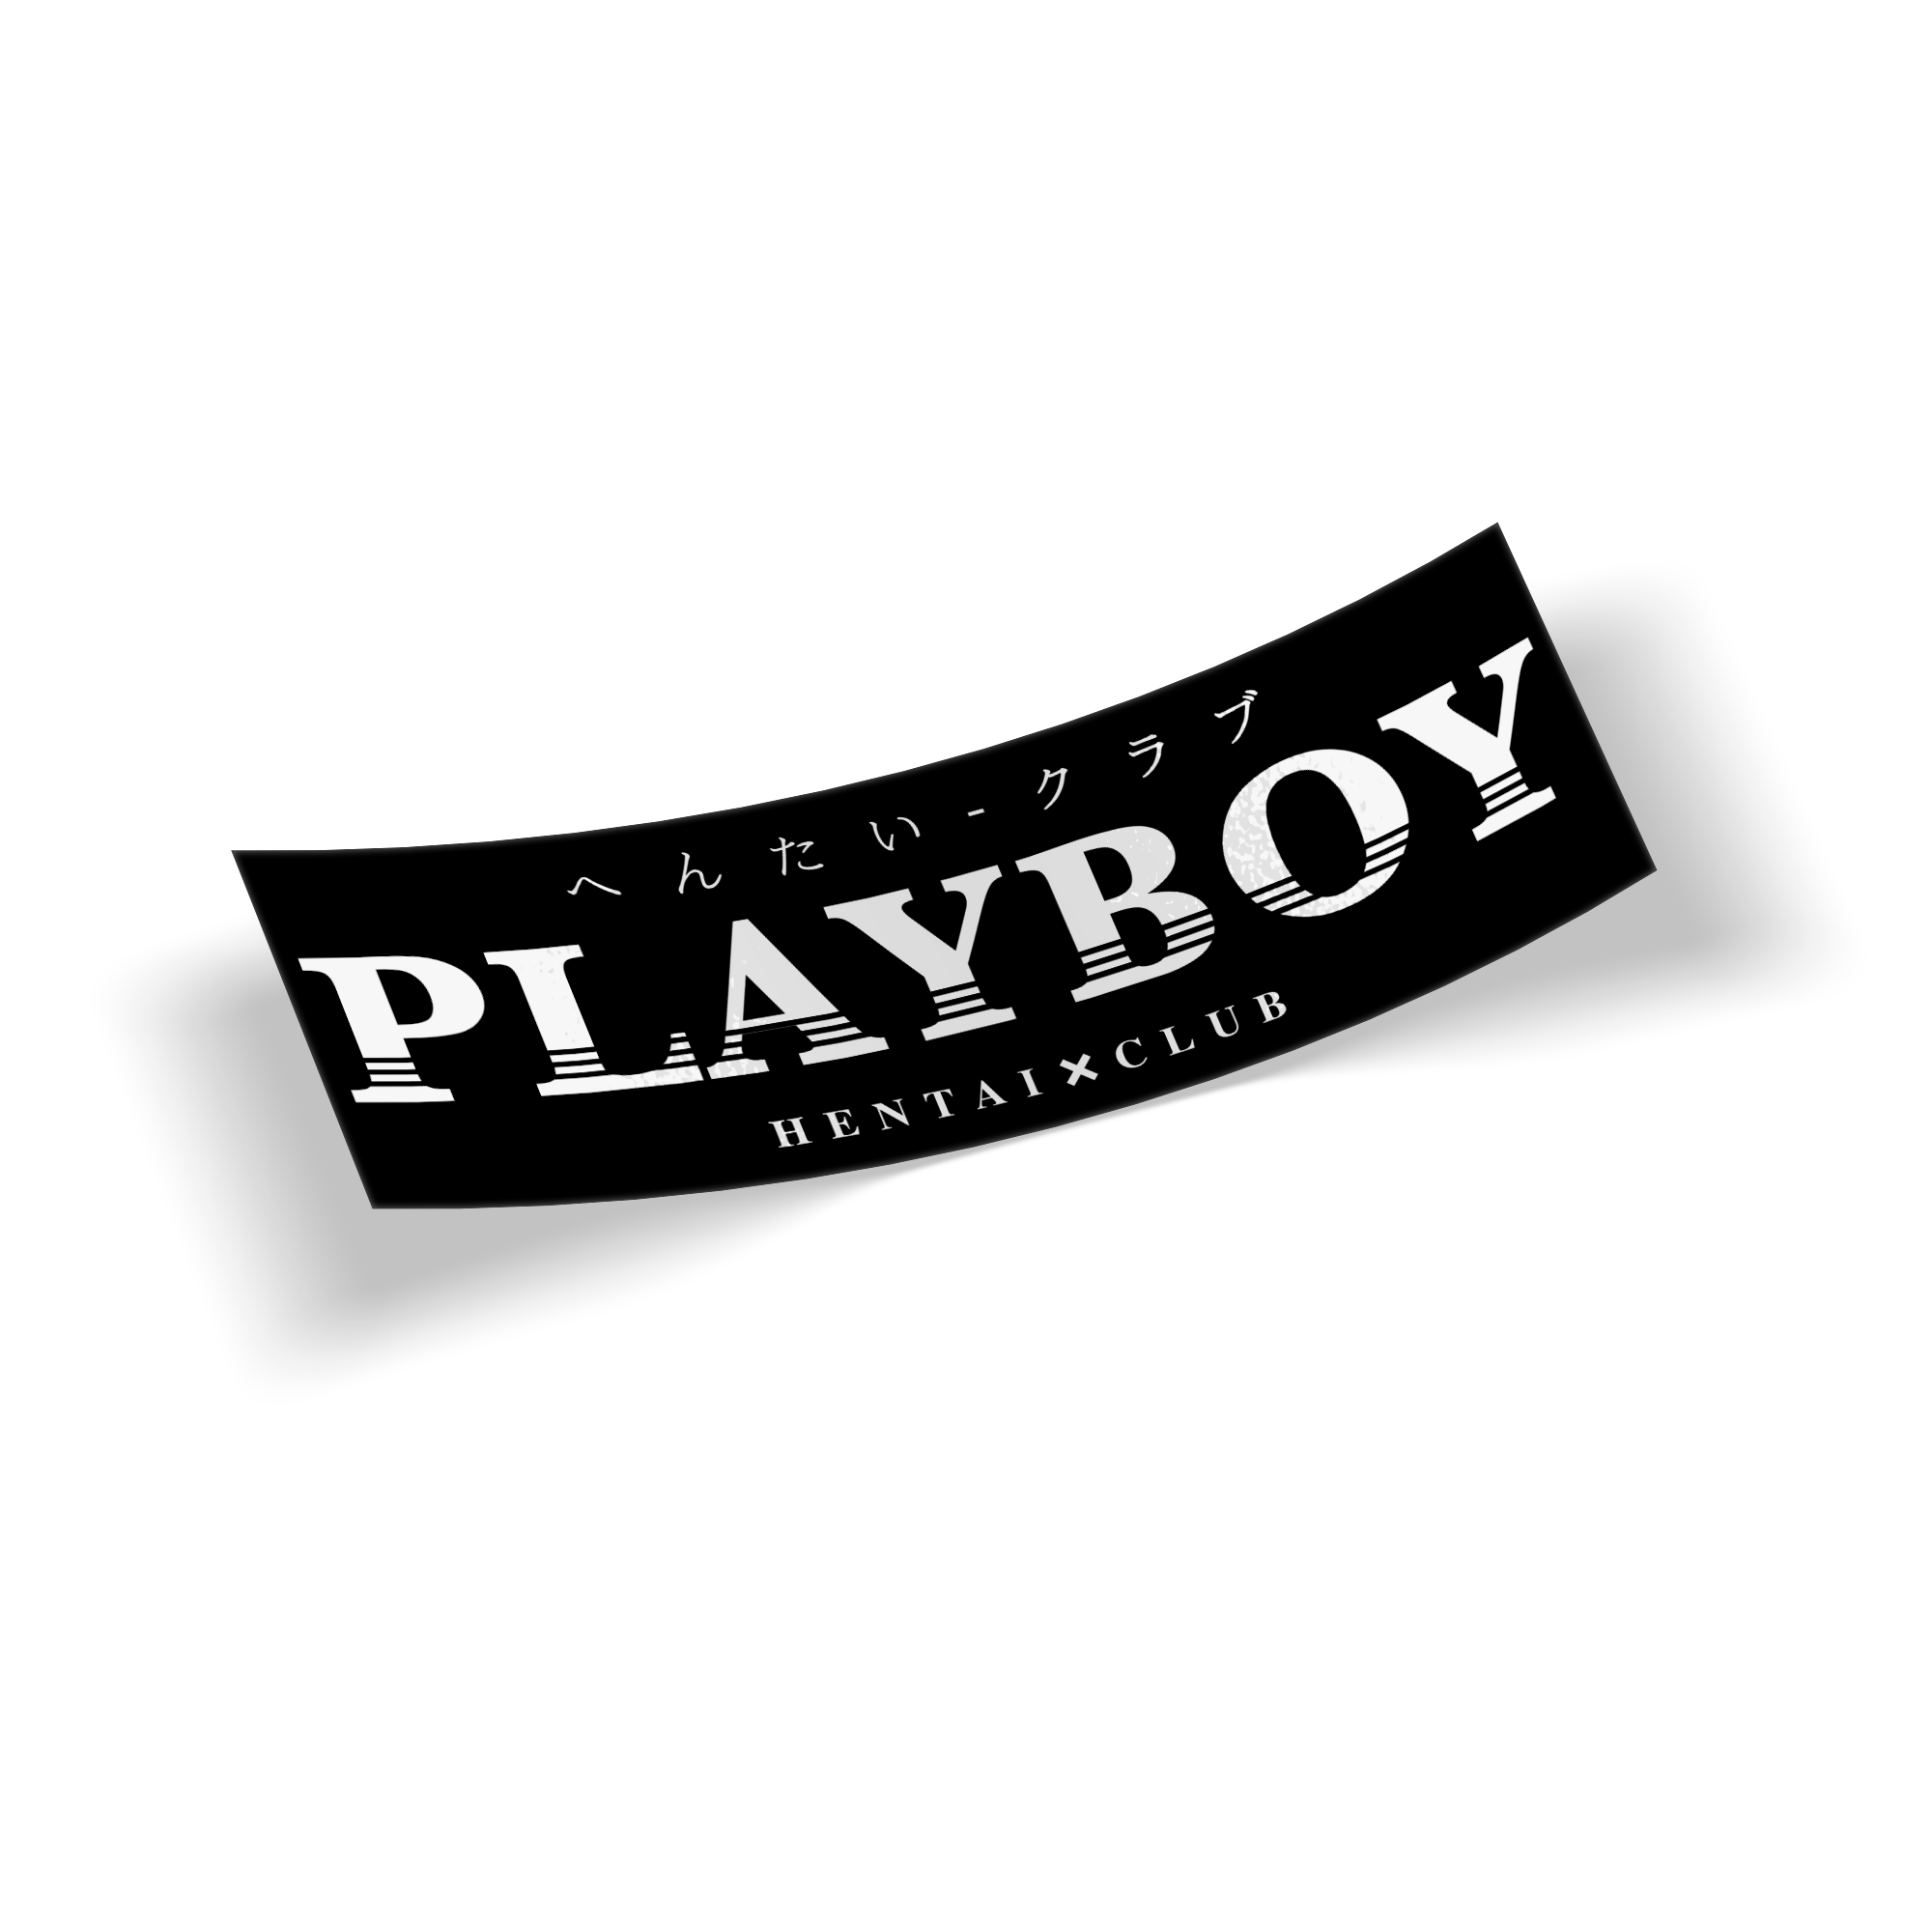 PLAYBOY HENTAI CLUB! | Products | Pinterest | Products